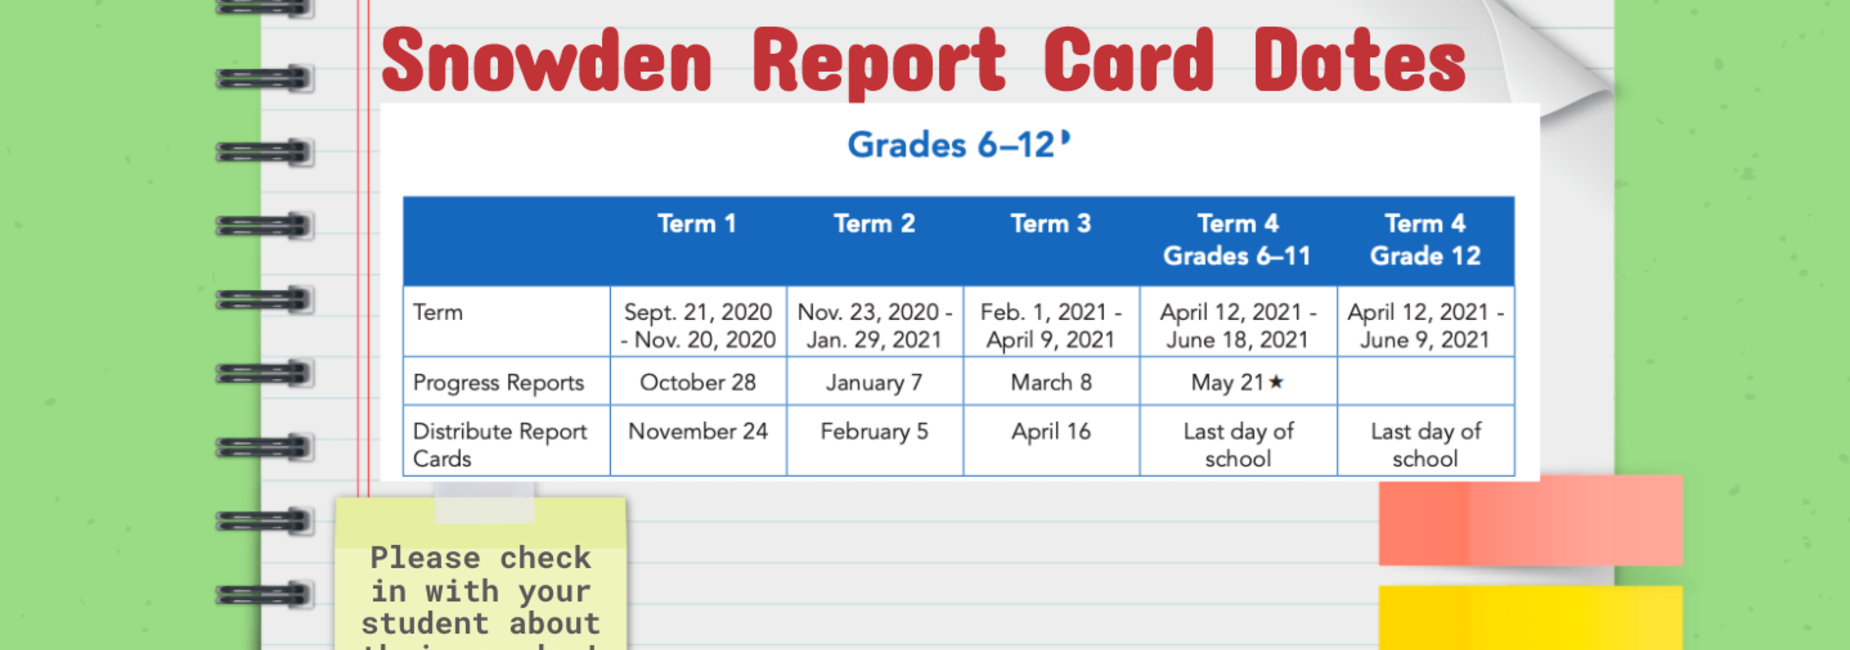 Snowden Report Card Dates